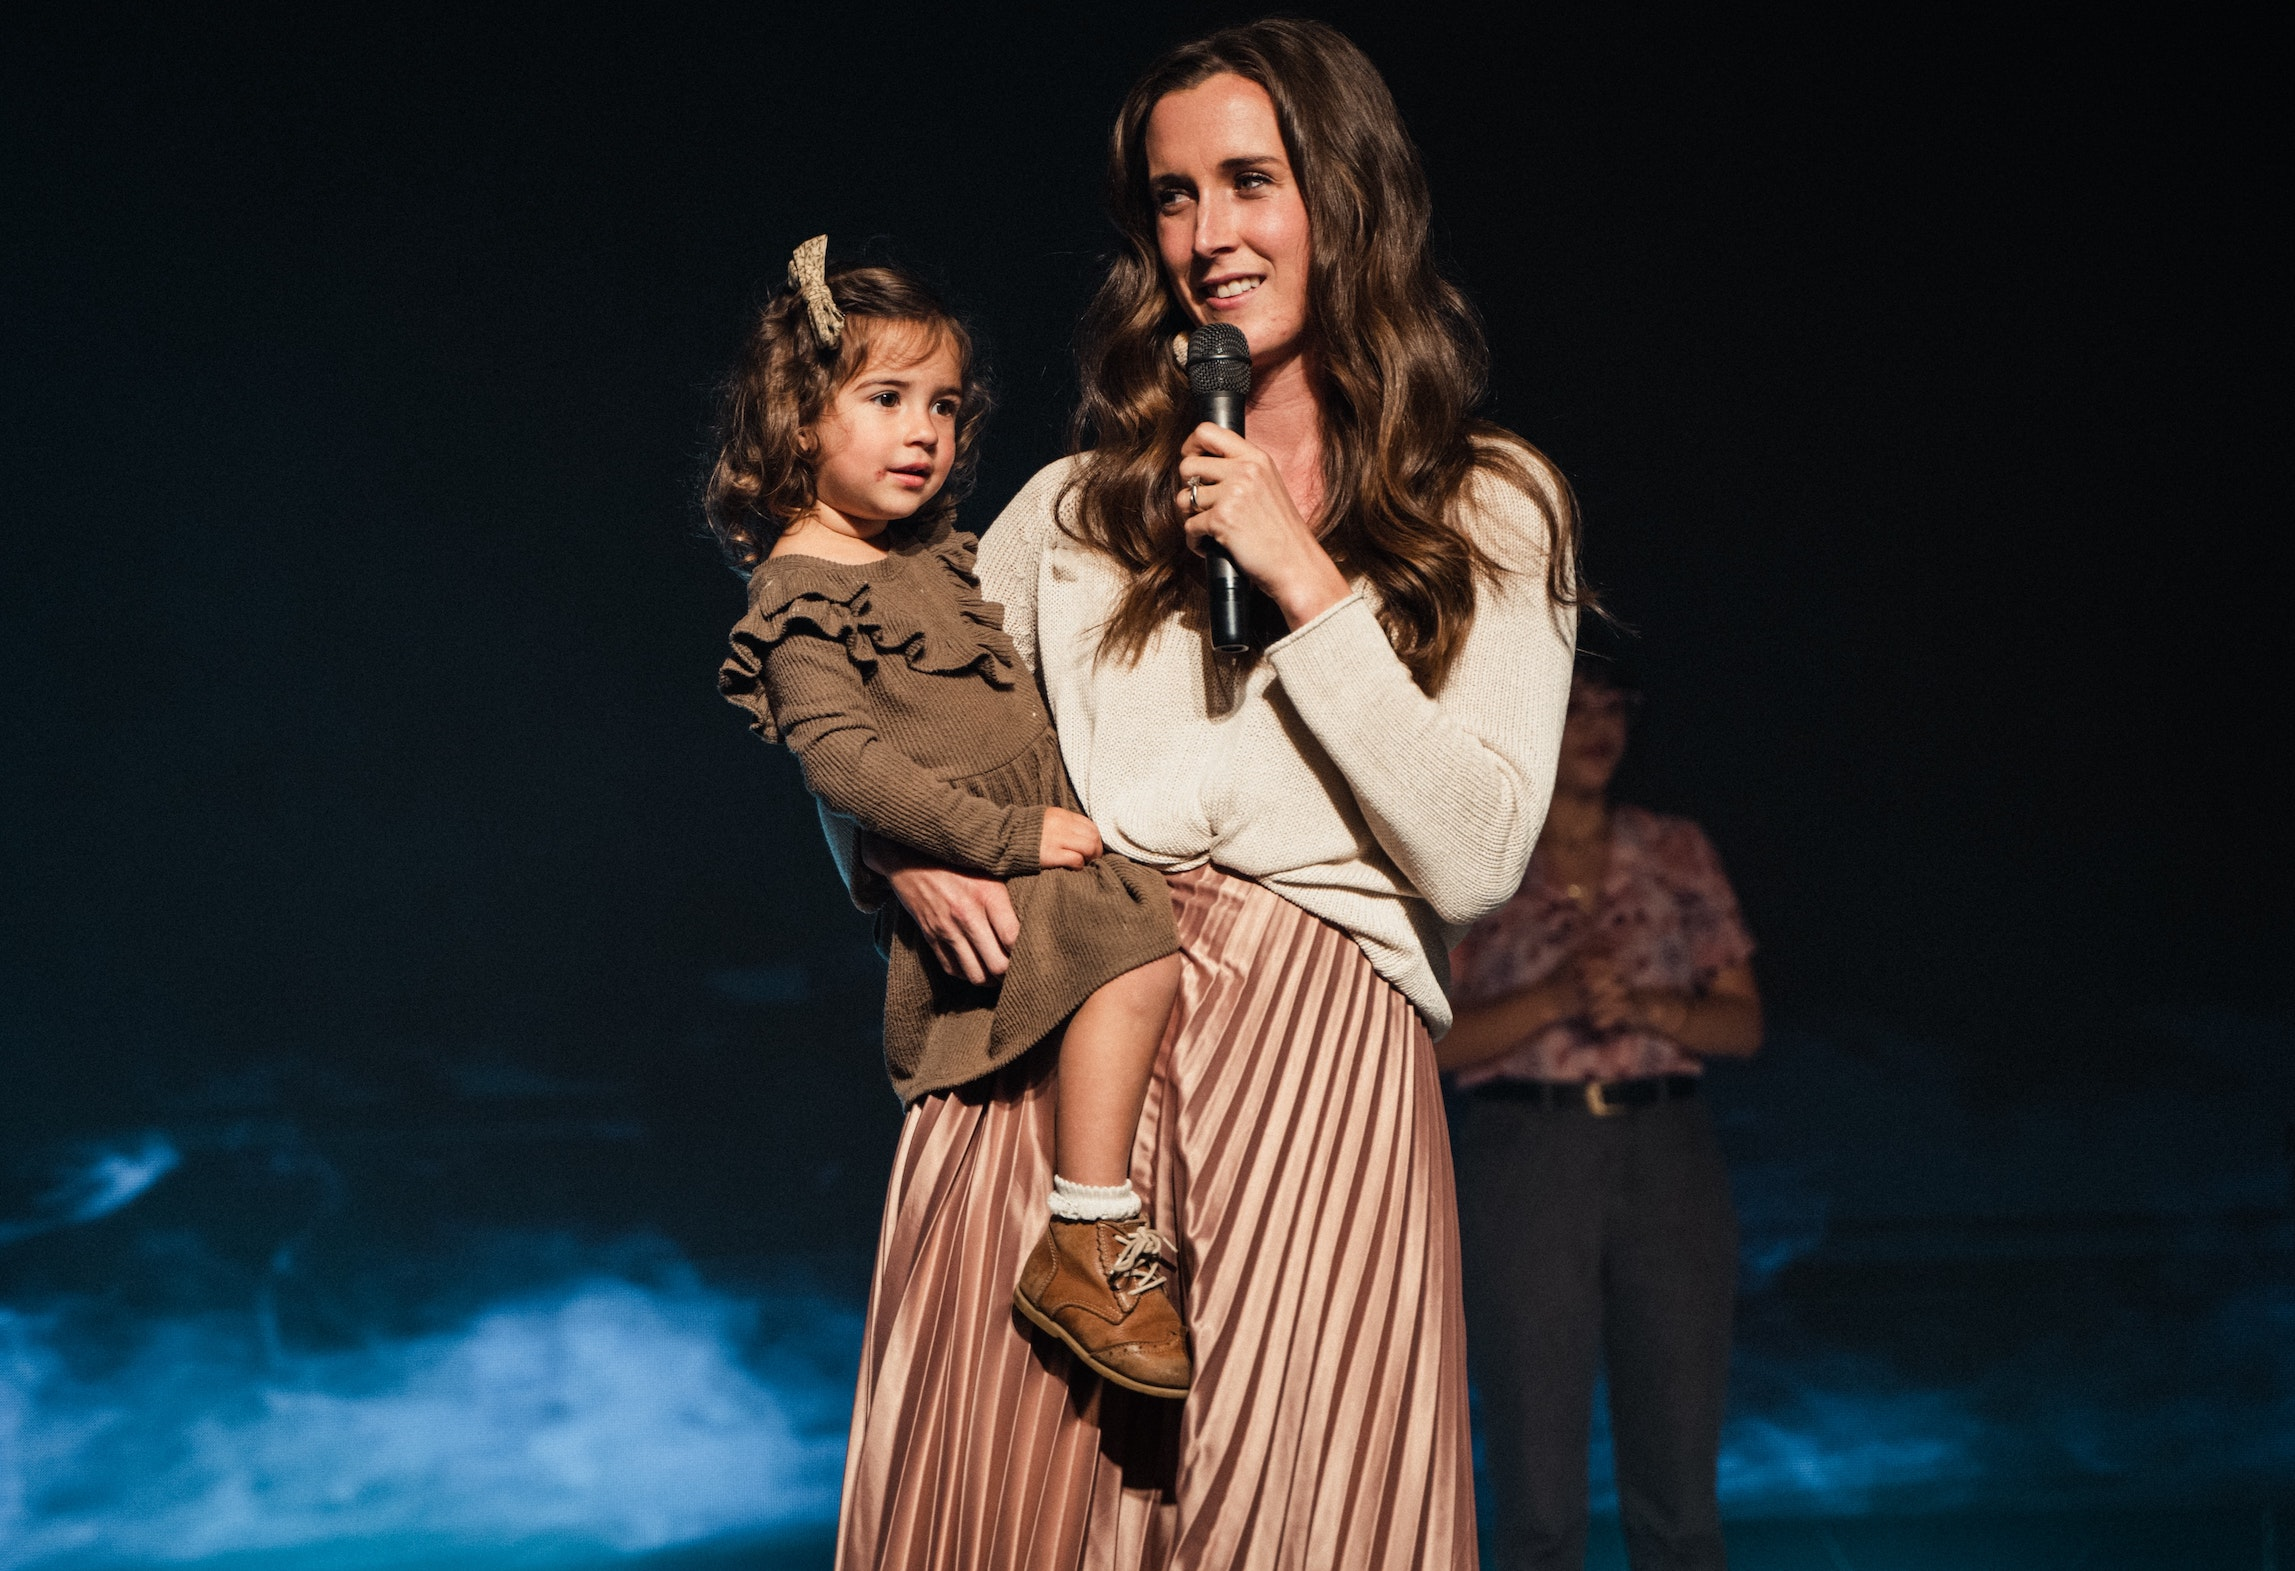 Woman with girl toddler on her hip talking into a microphone